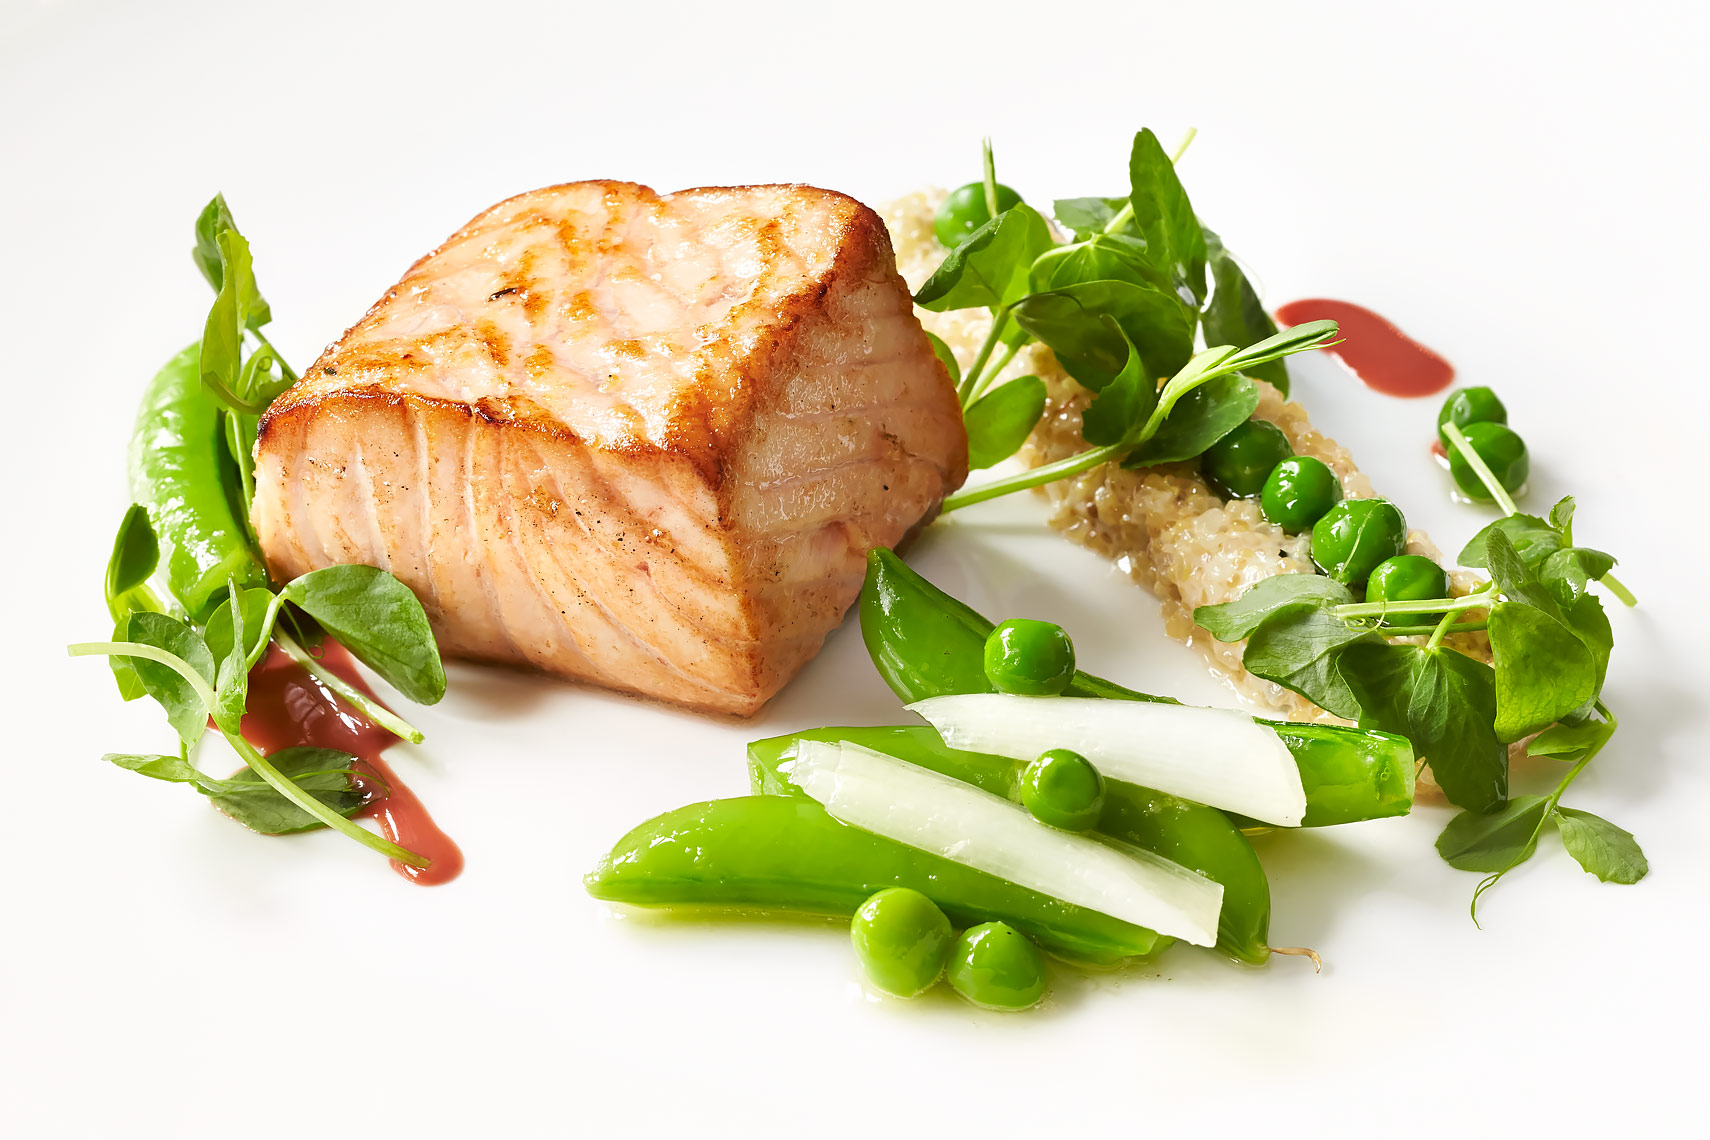 FOOD-DiningOut39-Capella-Grill-Room-Salmon